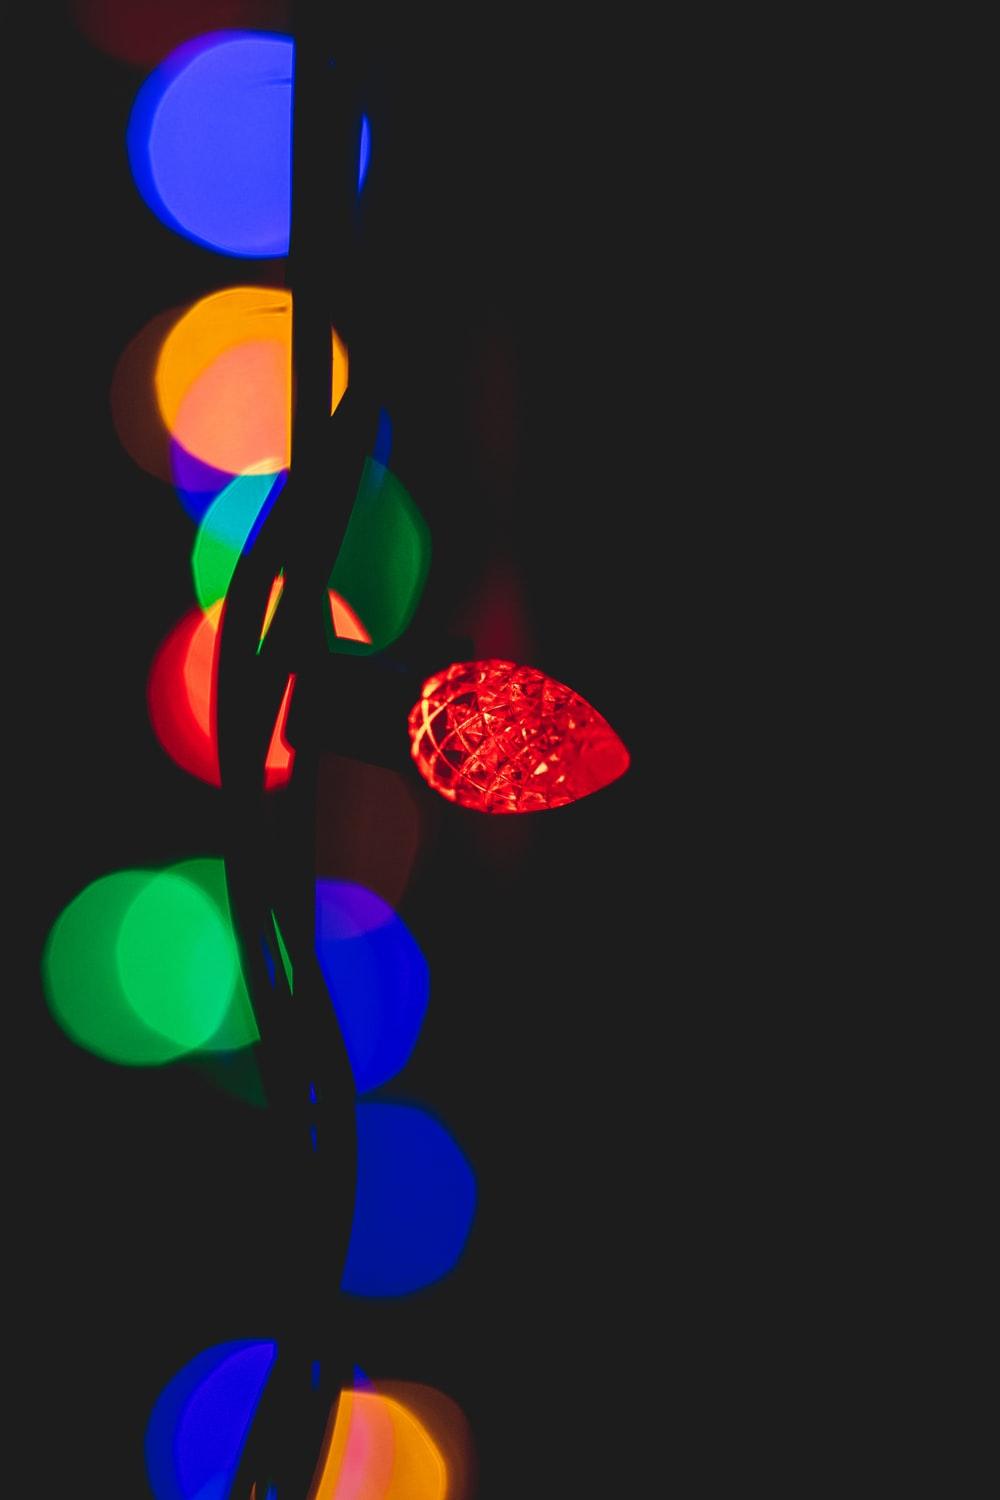 red string light in bokeh photography